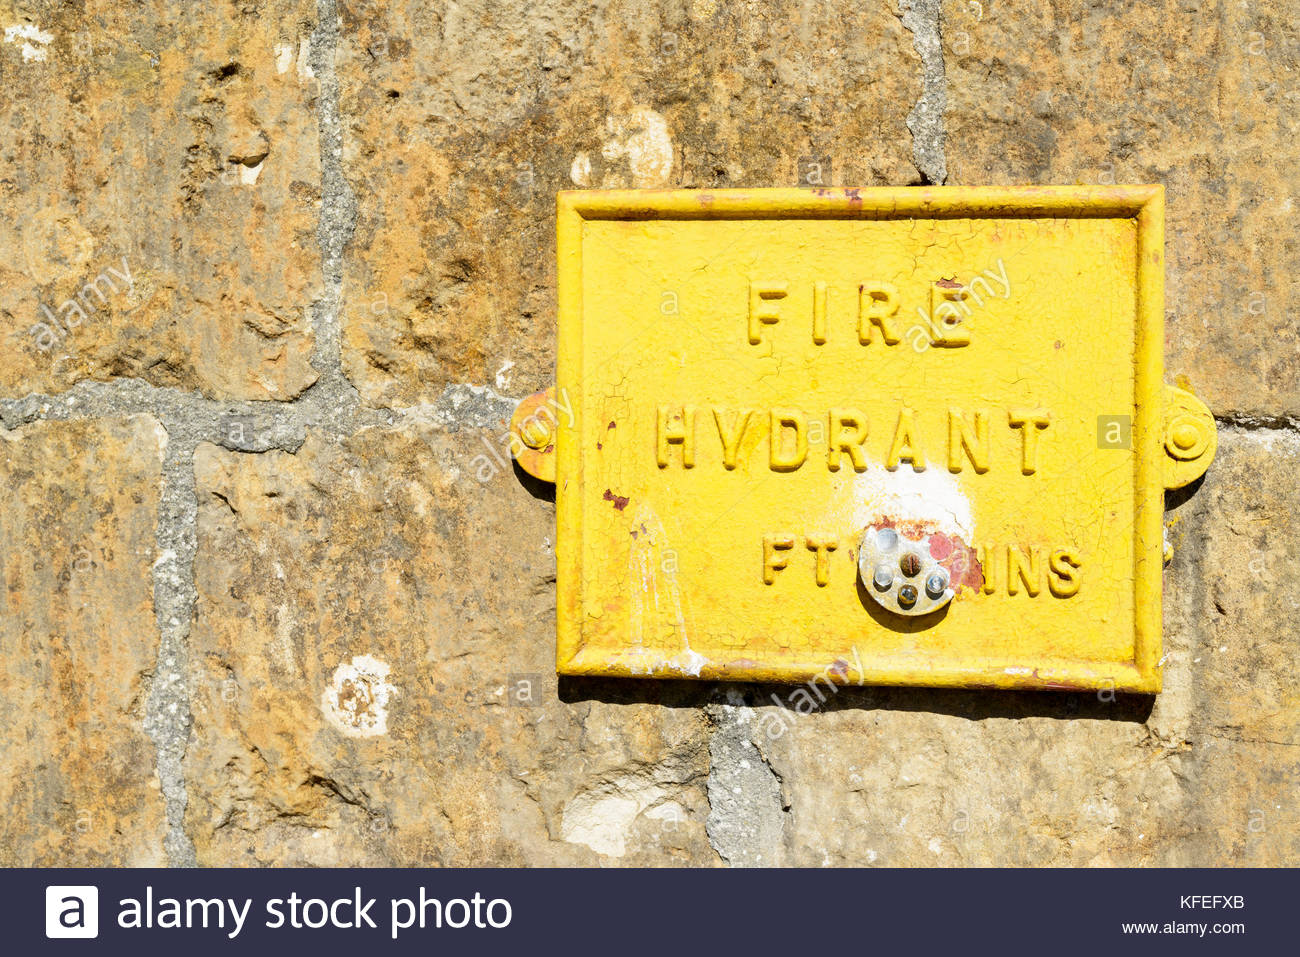 Fire Hydrant wall sign, Sherborne, Dorset, England, UK - Stock Image